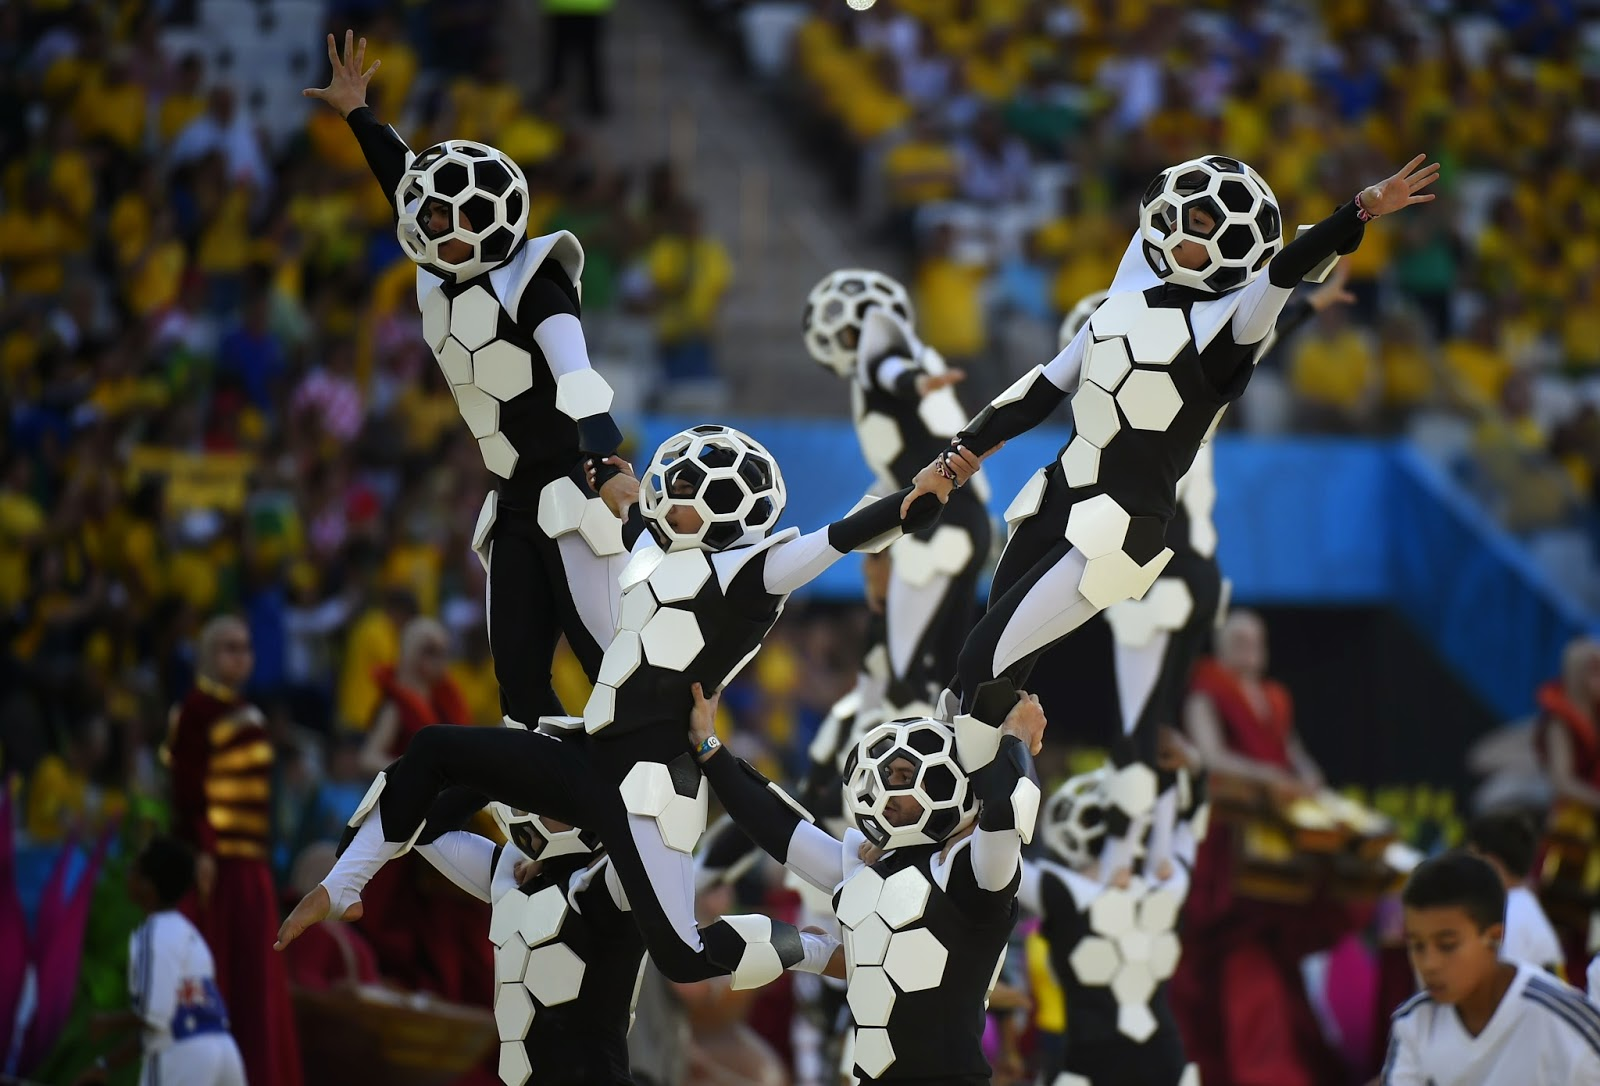 Artist, Brazil, Claudia Leitte, FIFA Kick off, FIFA Opening Ceremony, FIFA World Cup, FIFA World Cup 2014, Football, Jennifer Lopez, Opening Ceremony, Pitbull, Pitbull and Claudia Leitte, Sports, World Cup, Showbiz,